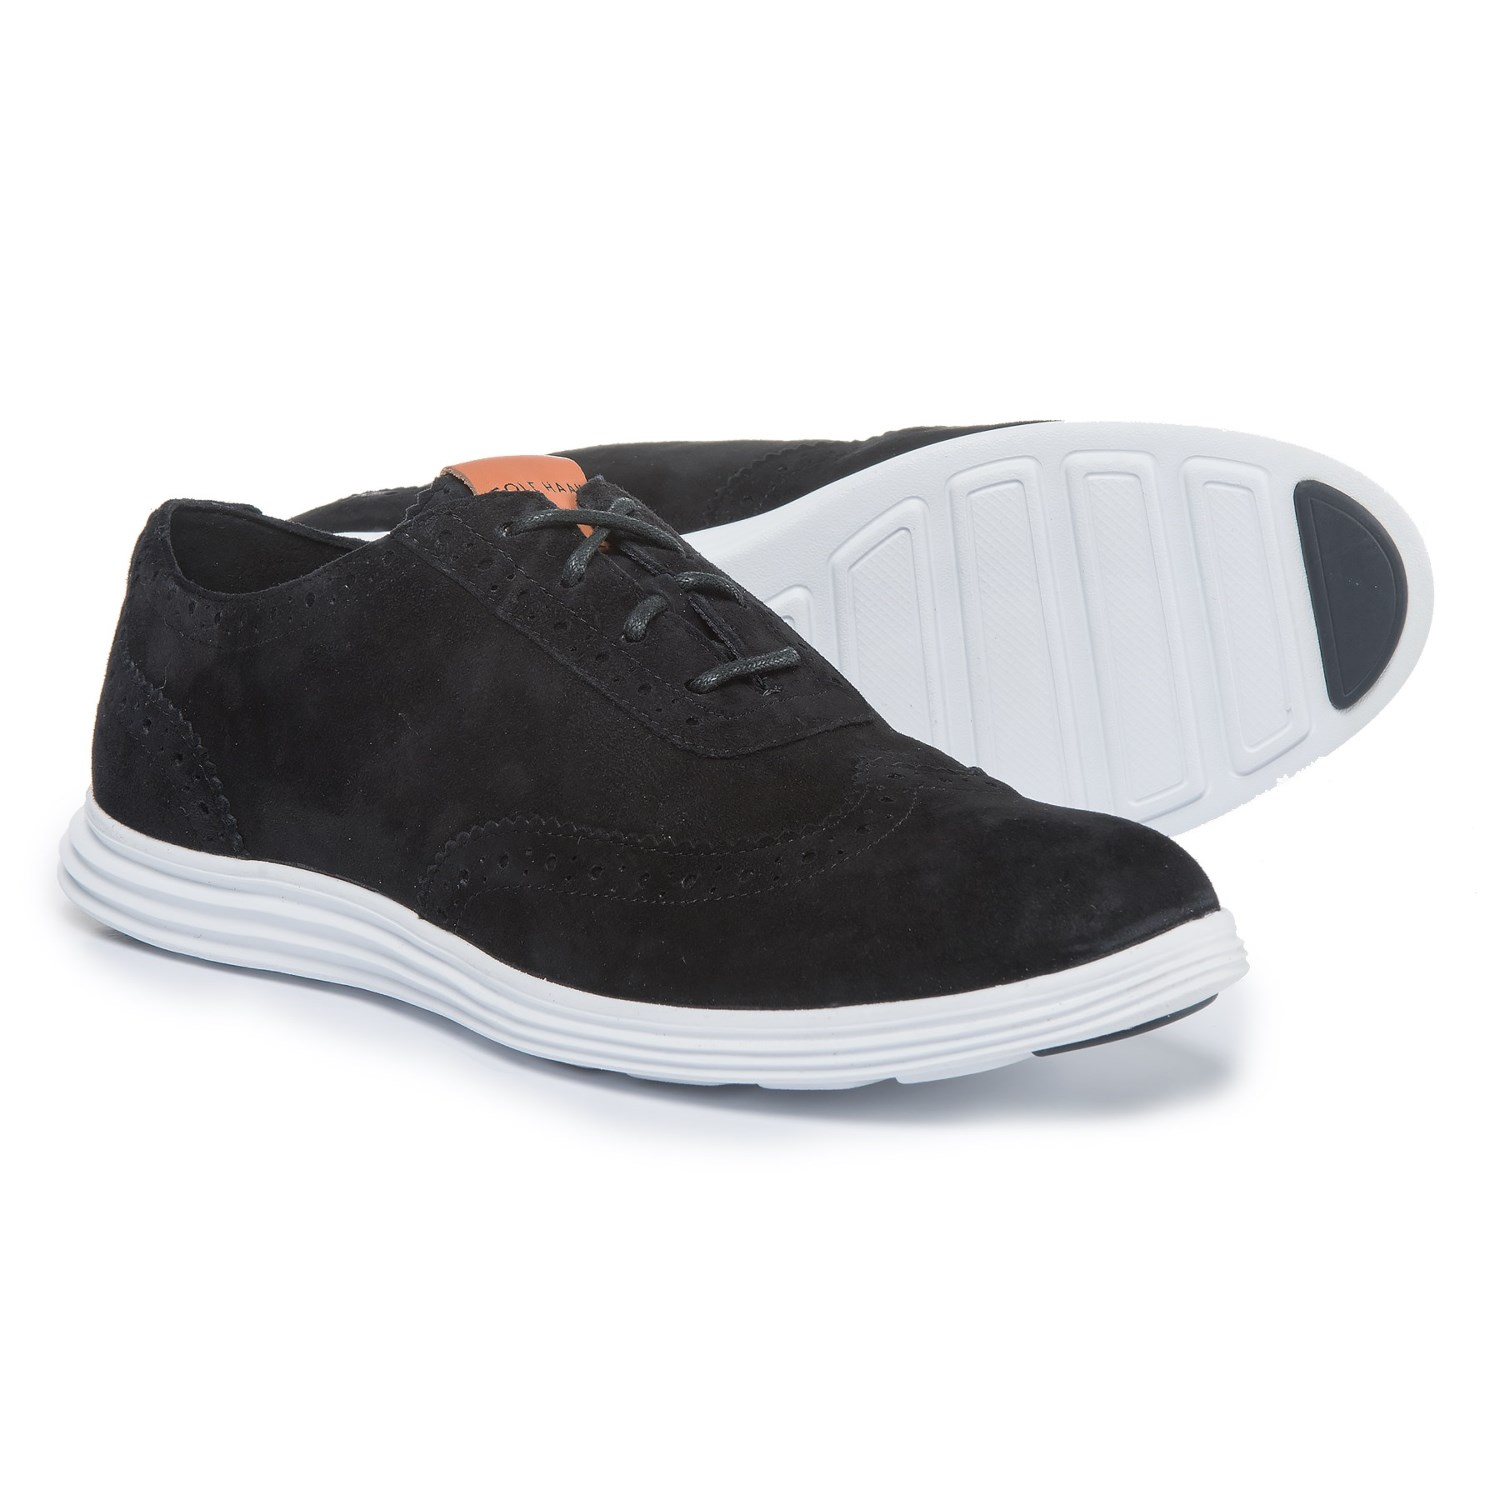 Cole Haan Misha Grand Oxford II Sneakers - Suede (For Women) in Black/